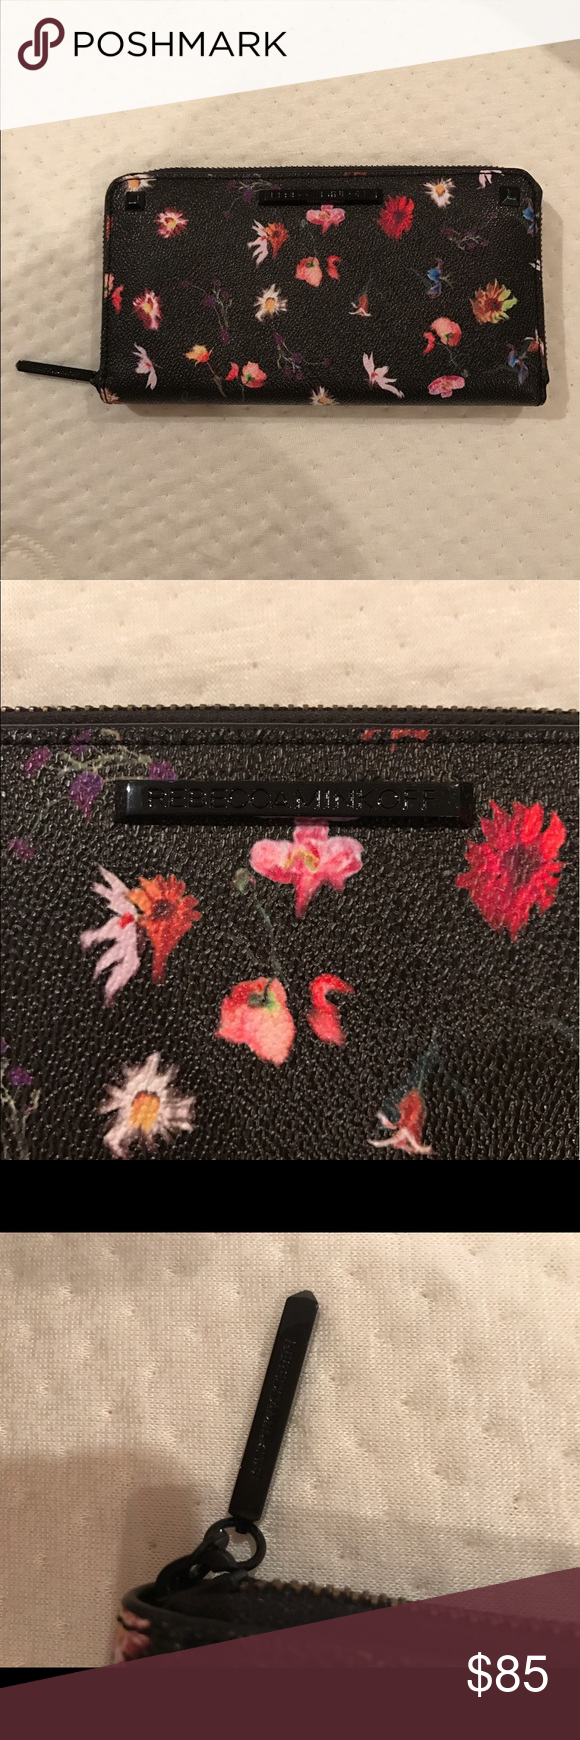 New Rebecca Minkoff Wallet New without tag Rebecca Minkoff Bags Wallets